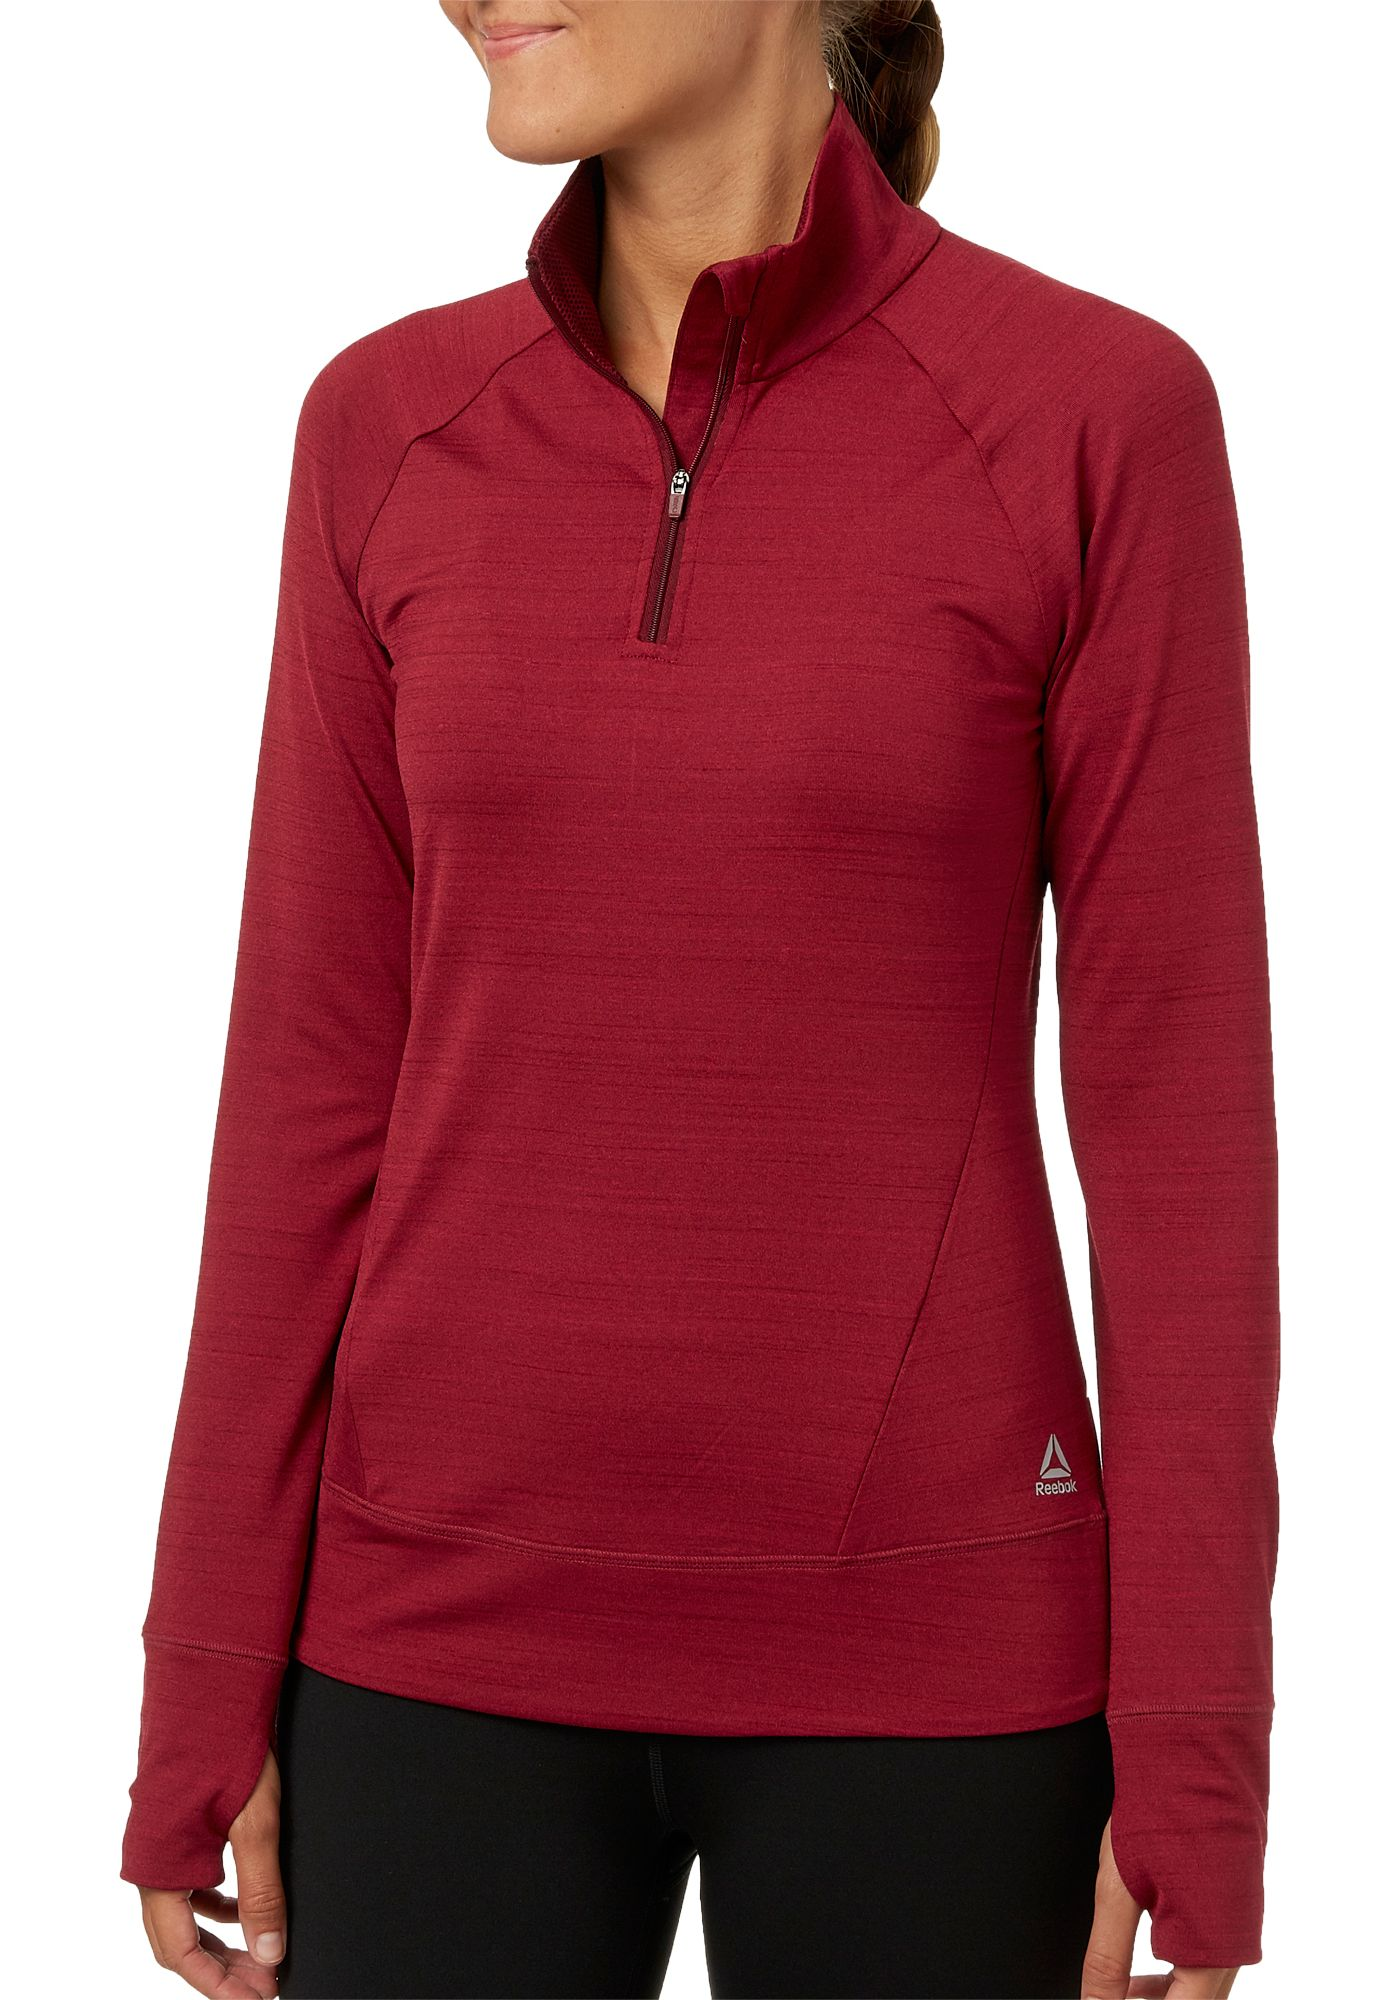 Reebok Women's Cold Weather Compression 1/4 Zip Long Sleeve Shirt